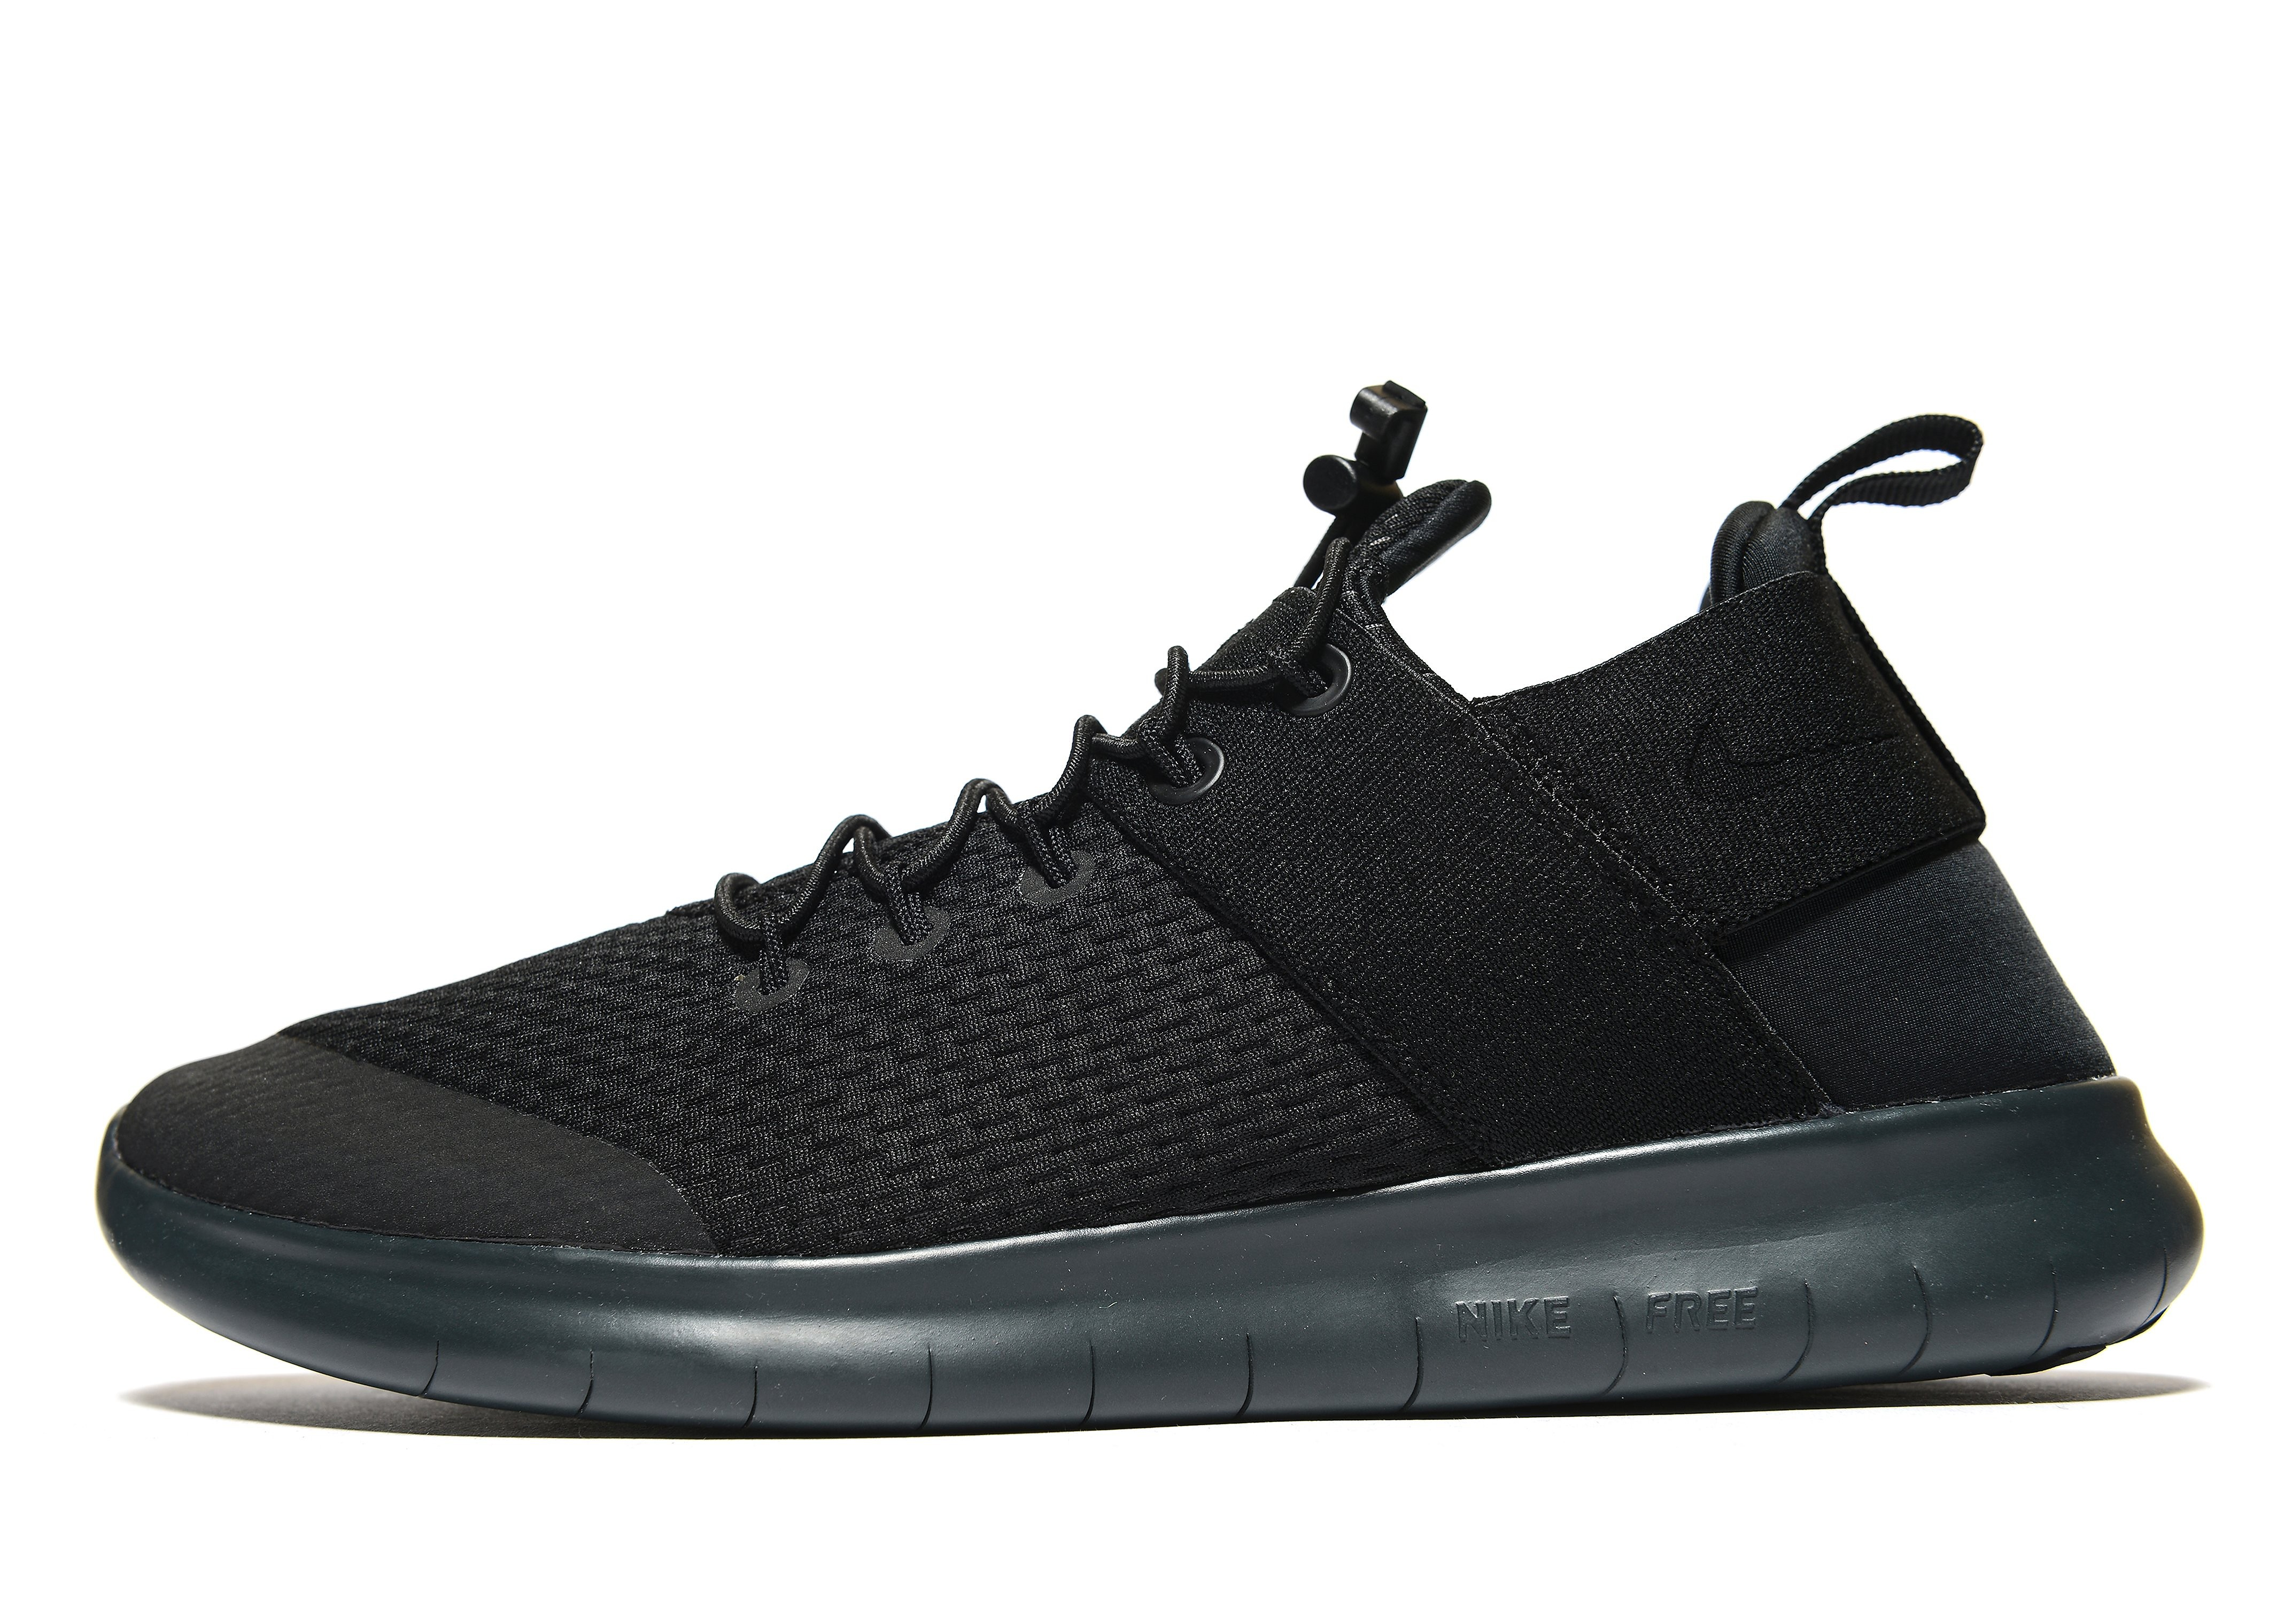 Nike Free Run Commuter 2